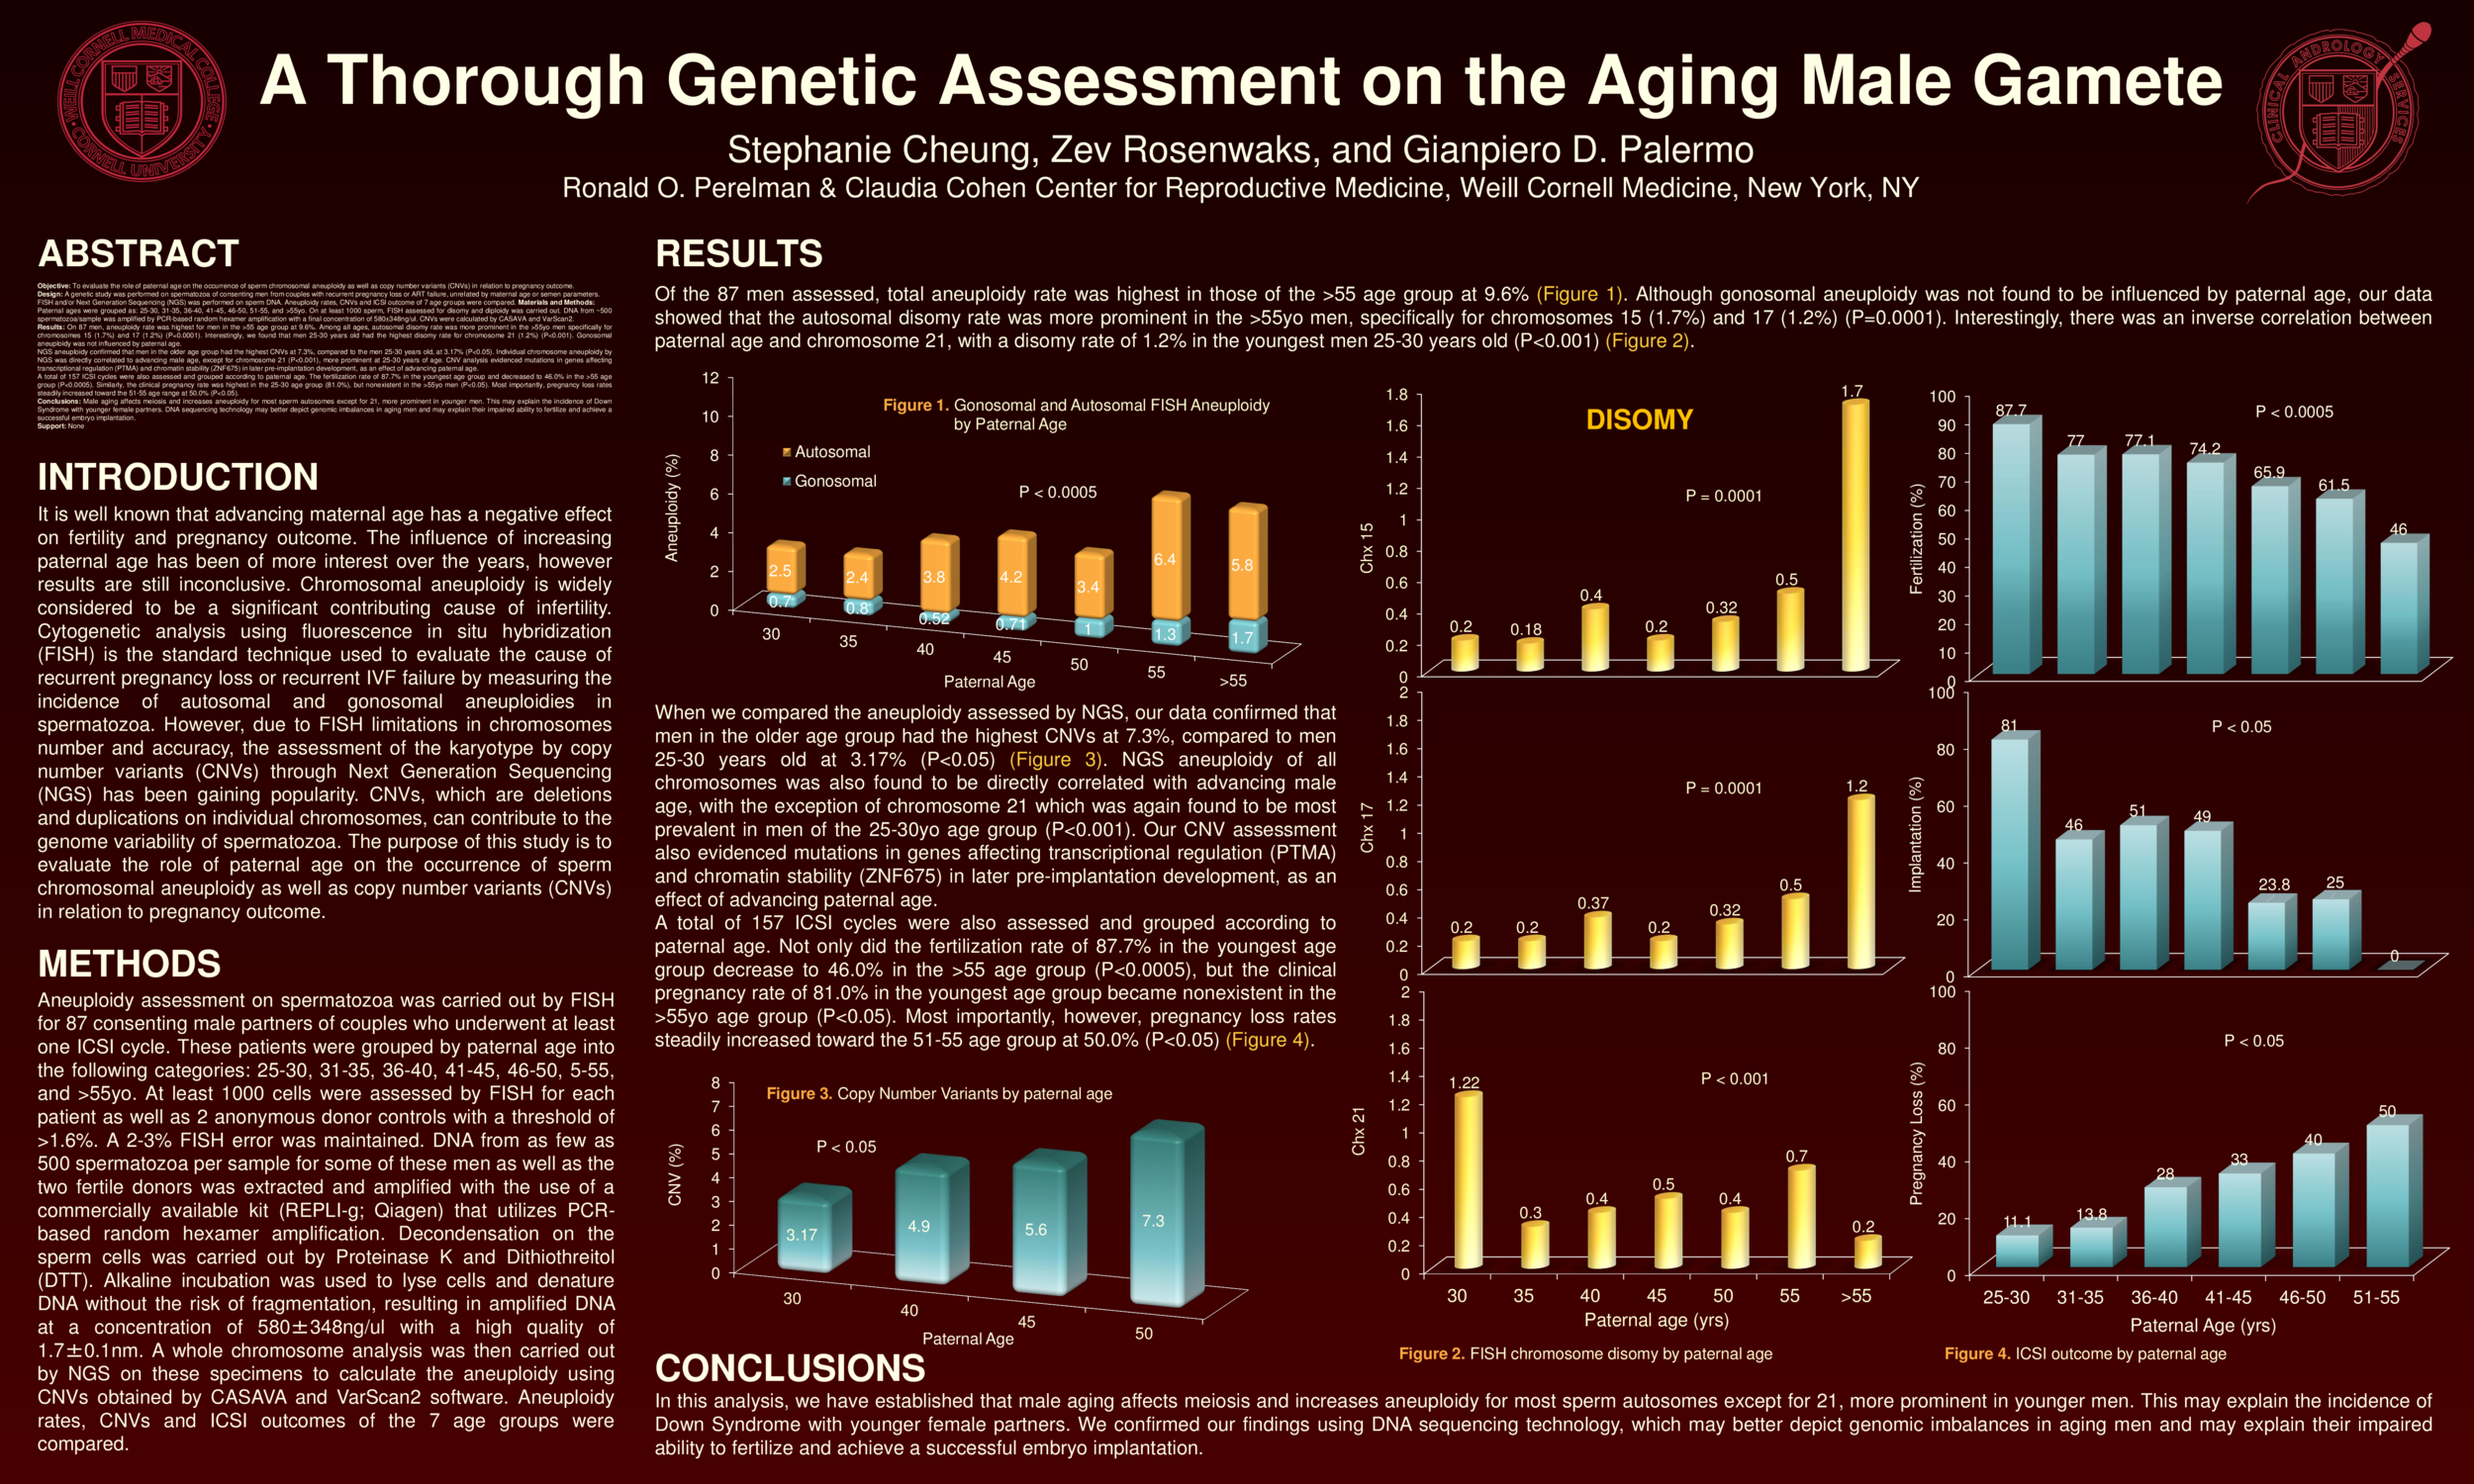 A Thorough Genetic Assessment on the Aging Male Gamete.png